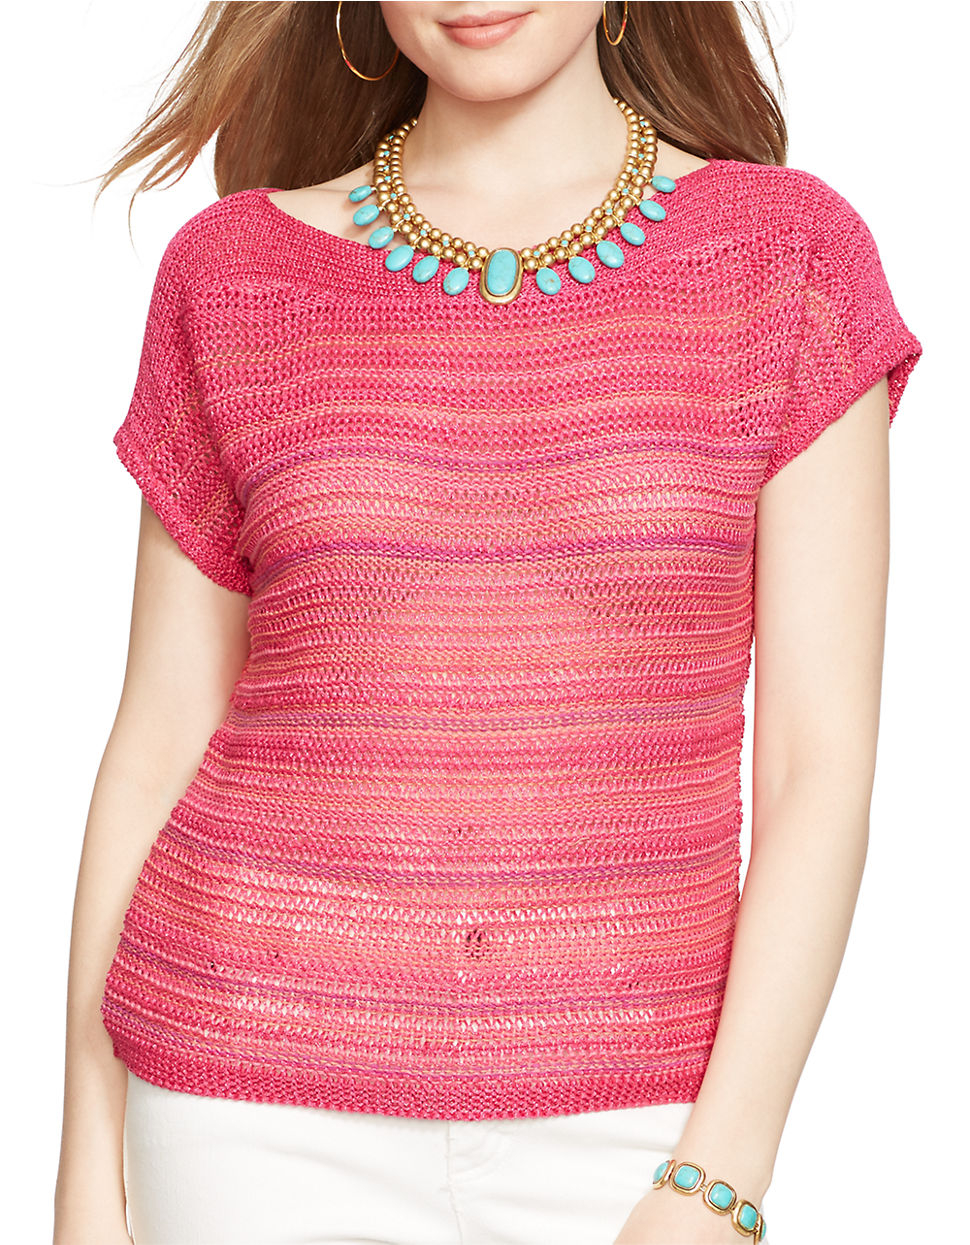 Lauren by ralph lauren Short-sleeved Marled Sweater in Pink | Lyst